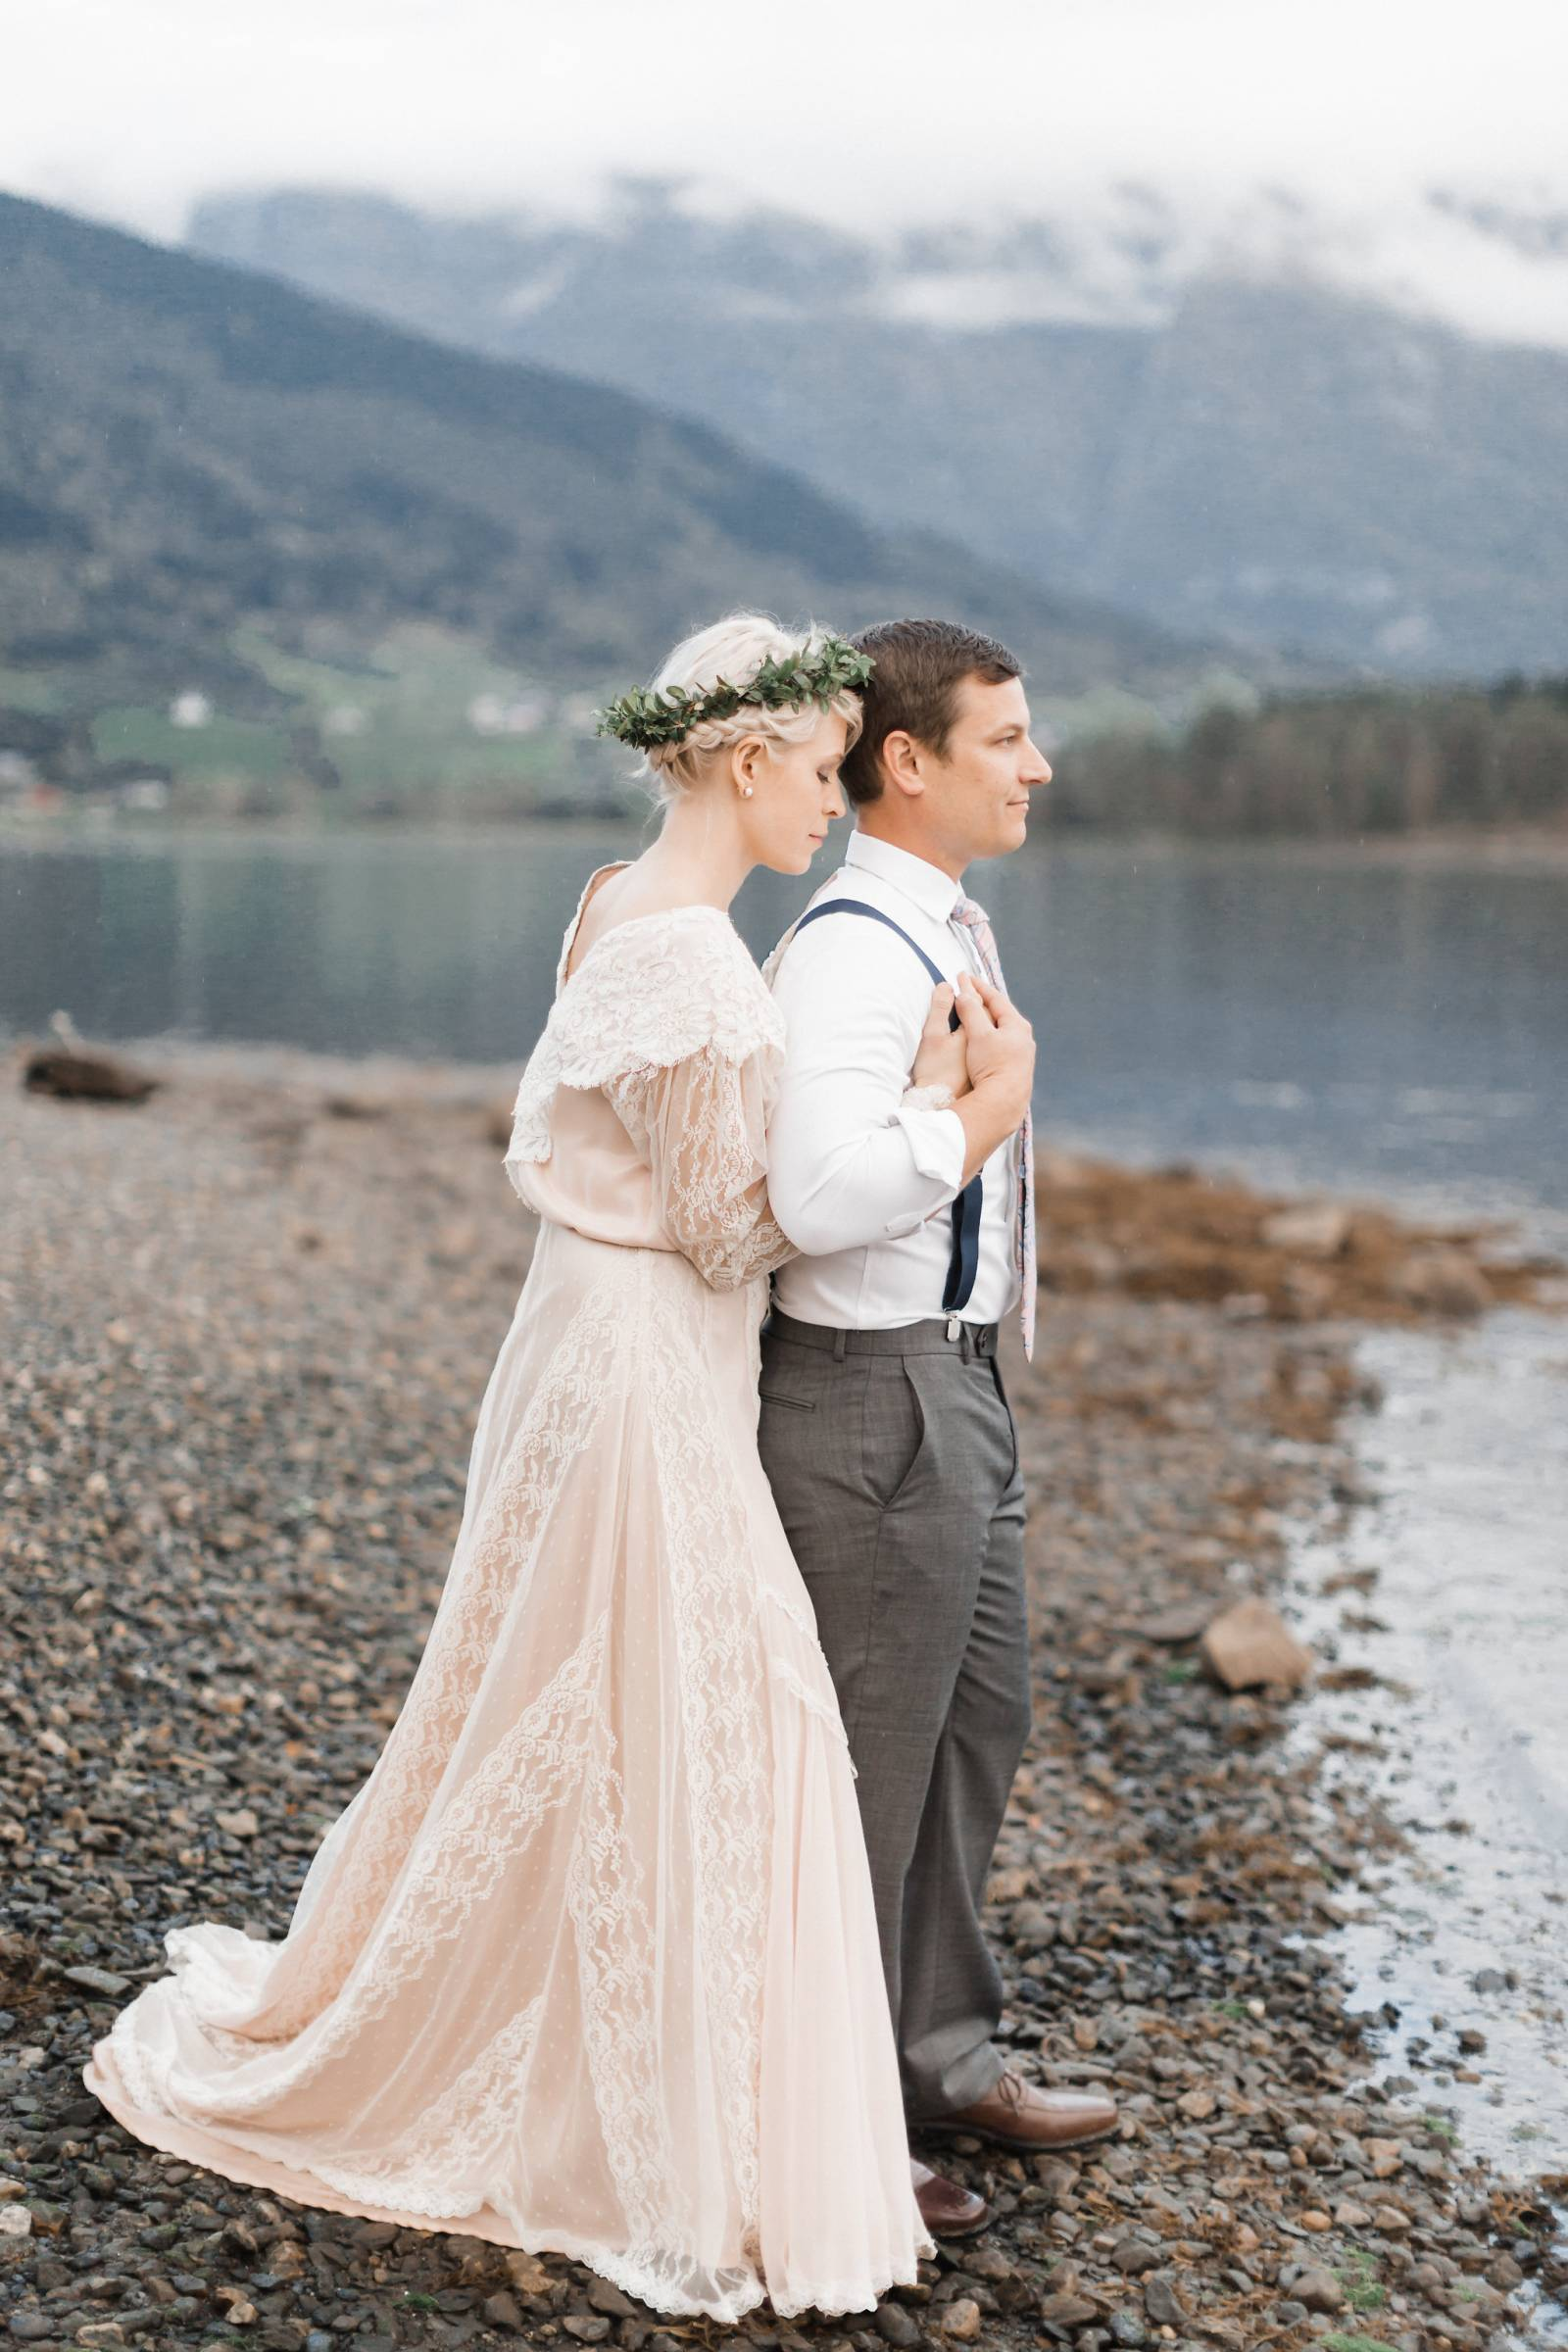 Sunset vow renewal amongst the fjords of Norway | Norway Vow Renewal